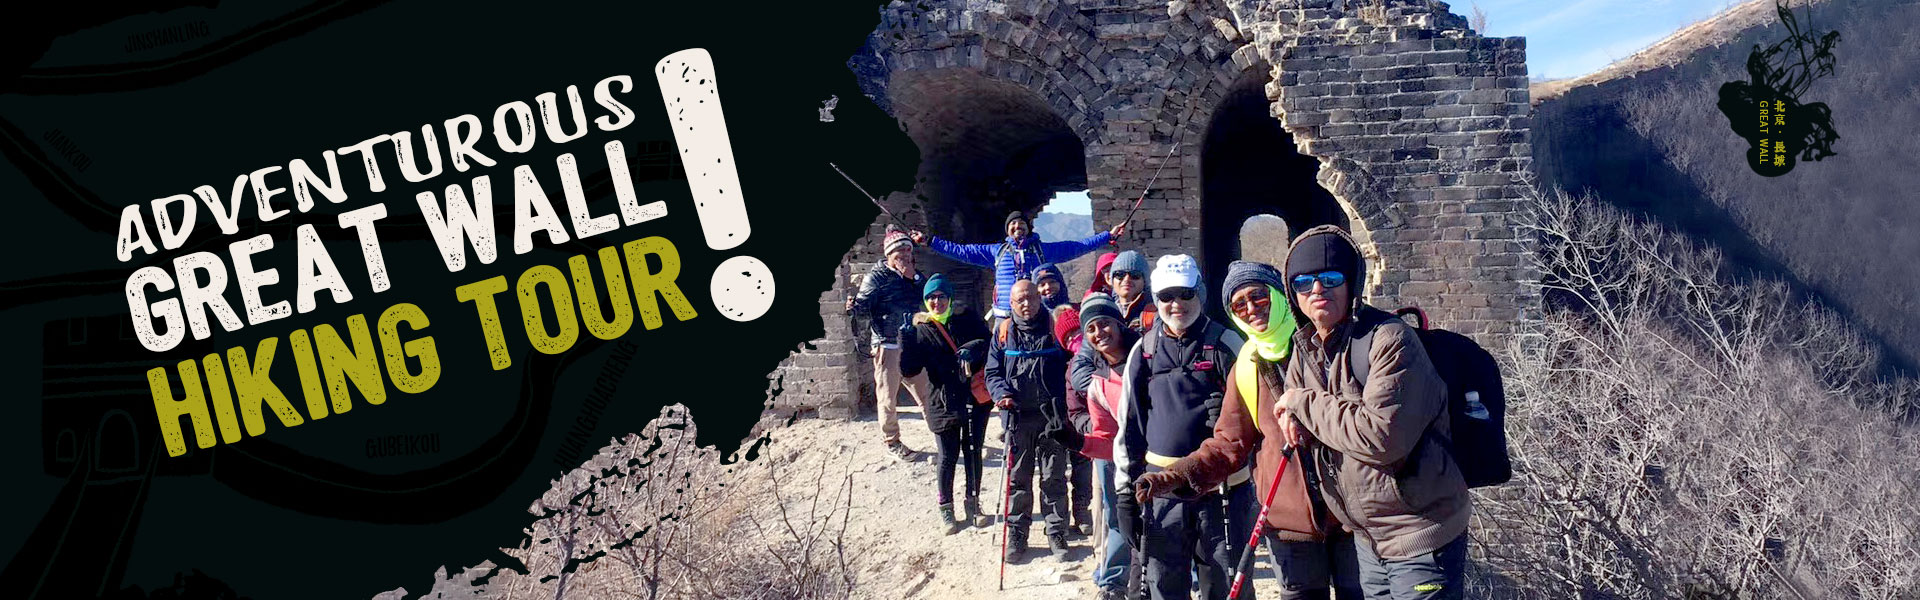 Adventurous Great Wall Hiking Tour